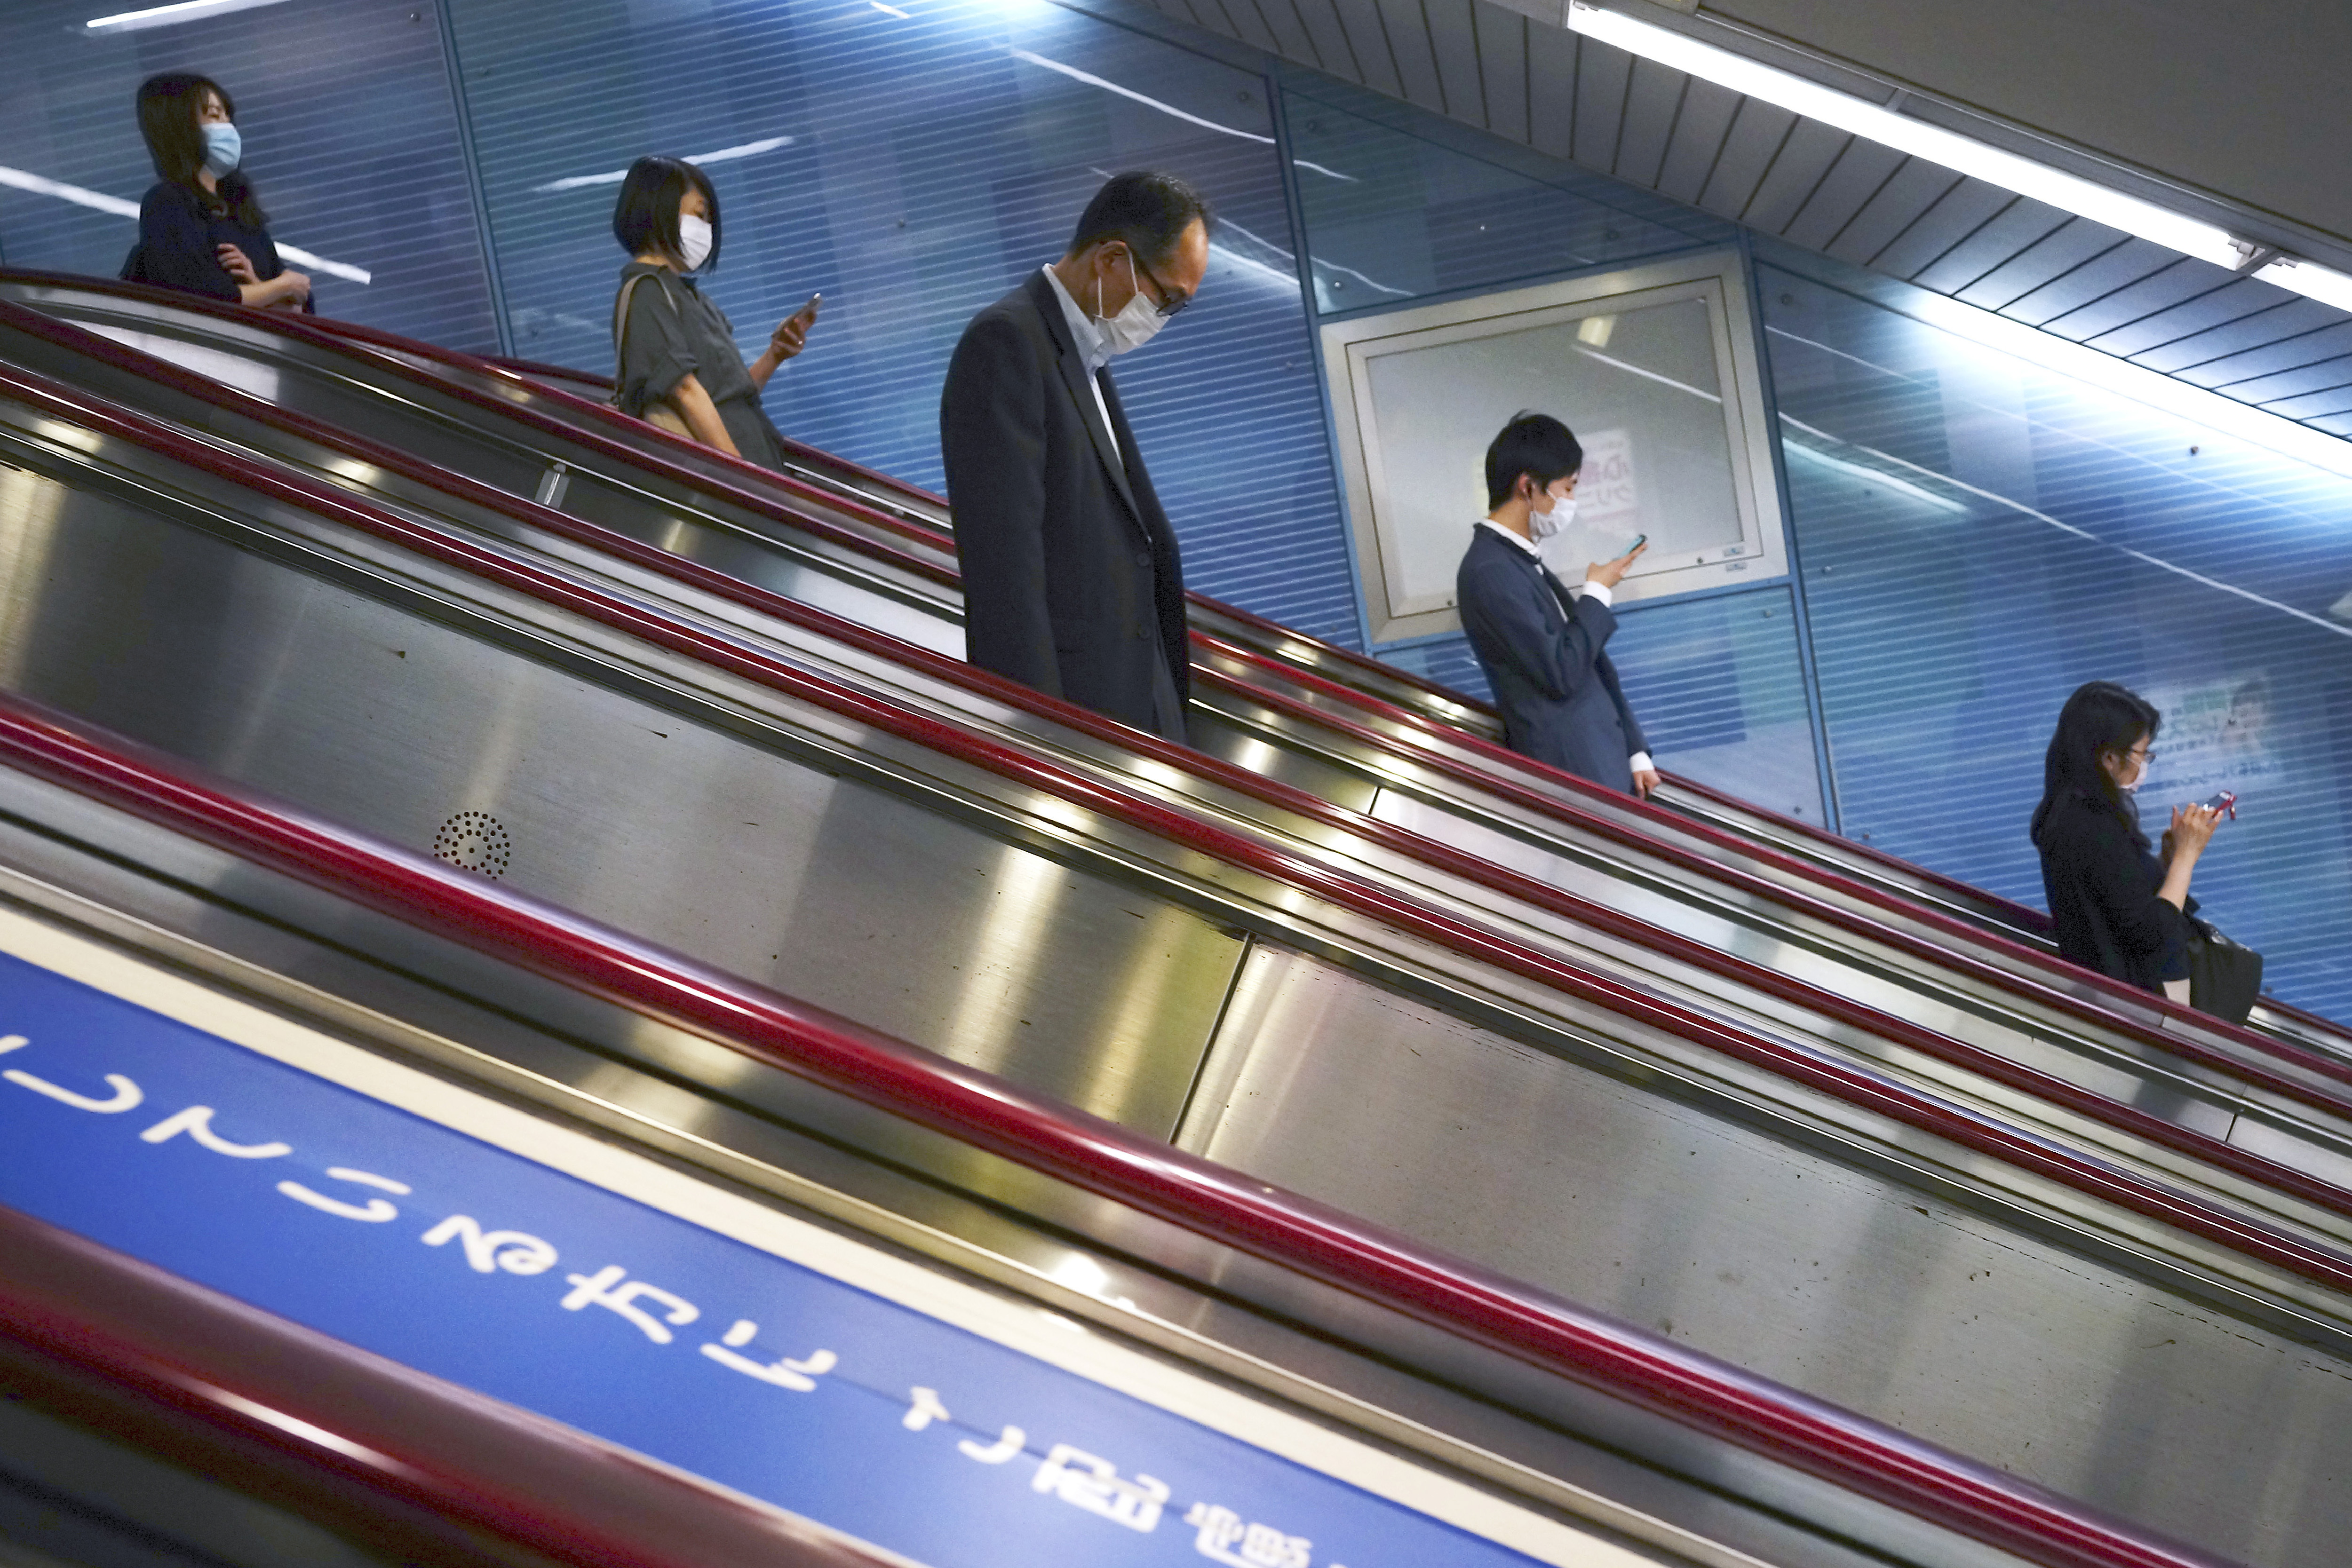 People wearing face masks to help curb the spread of the coronavirus ride an escalator into a subway station in Tokyo Monday, May 11, 2020. Japan has extended a state of emergency until the end of May. Photo: AP